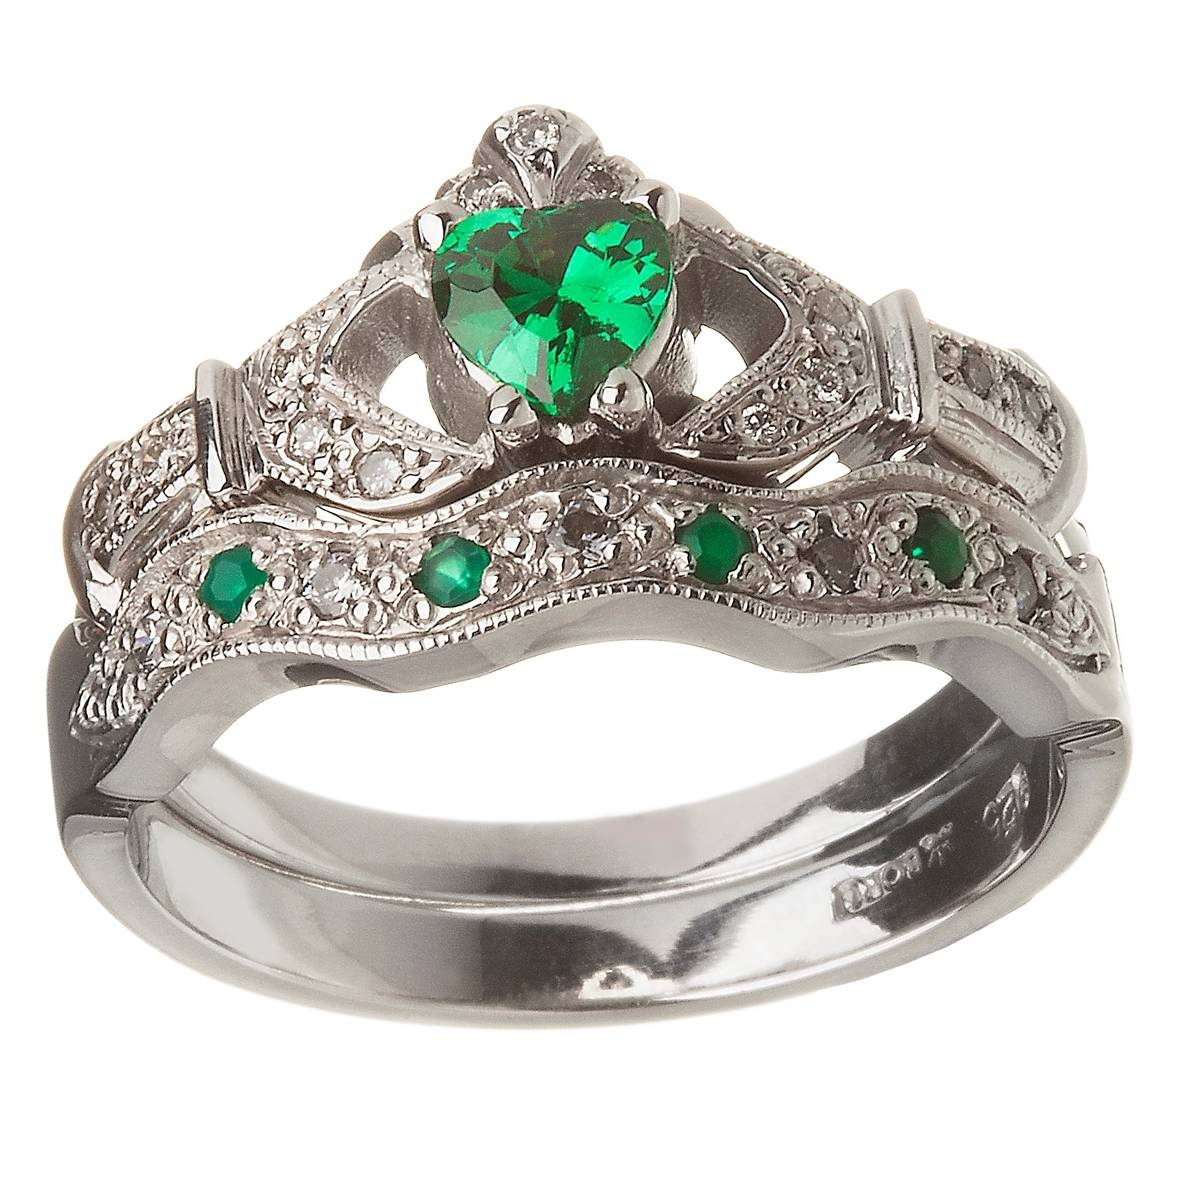 14K White Gold Emerald Set Heart Claddagh Ring & Wedding Ring Set For Irish Engagement Rings Claddagh (View 1 of 15)